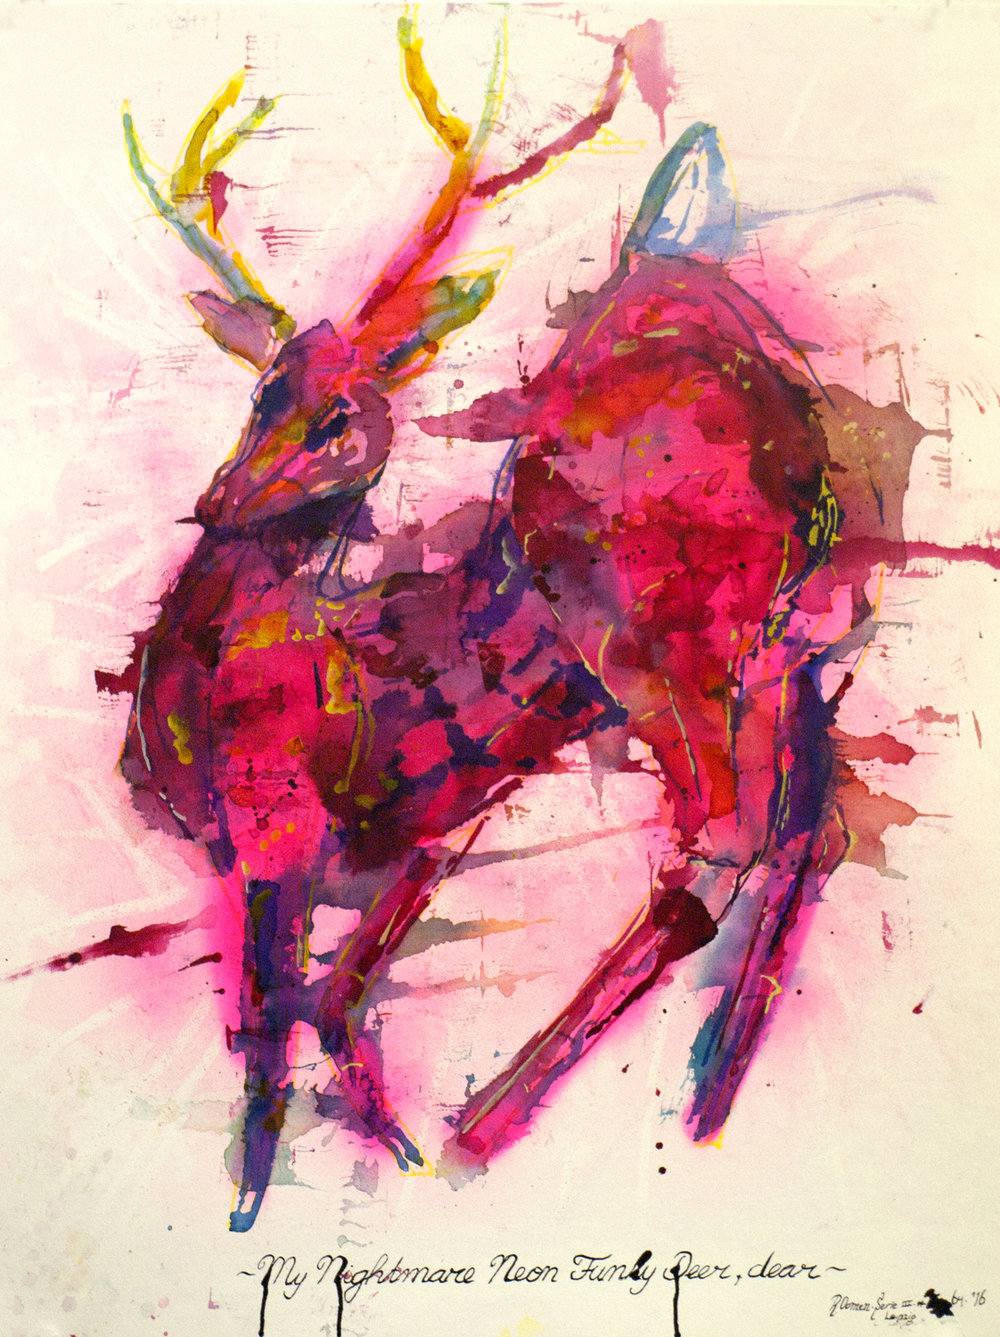 """My neon nightmare funky deer, dear"" ink, spray can and toddler markers on paper 65x50 cm 2016"